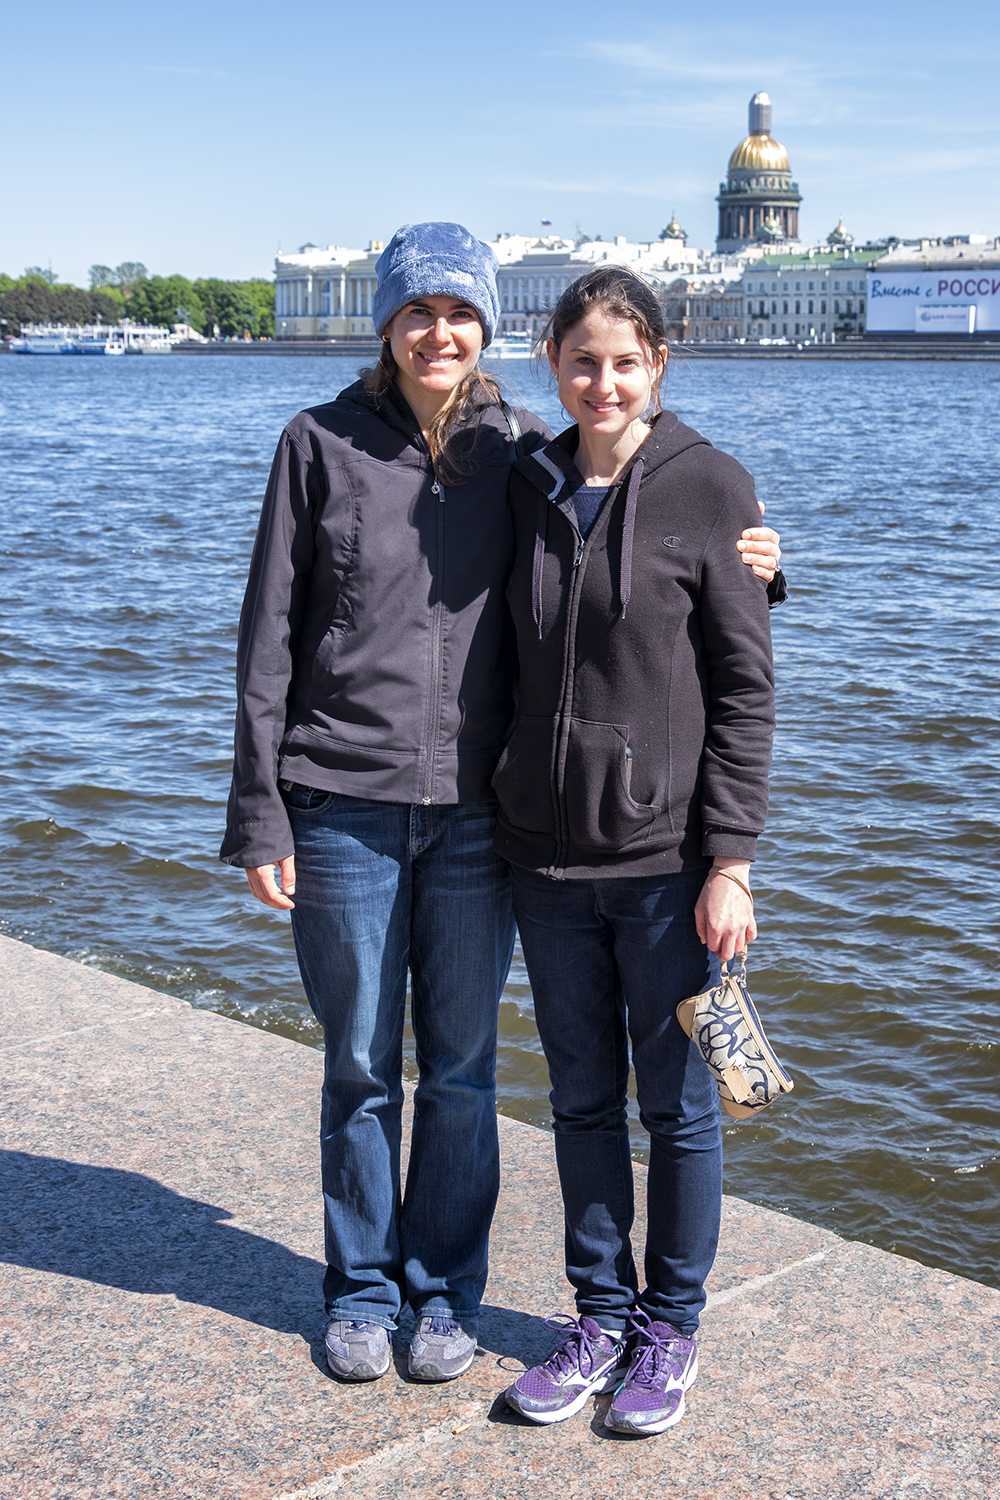 On the Neva River in St. Petersburg